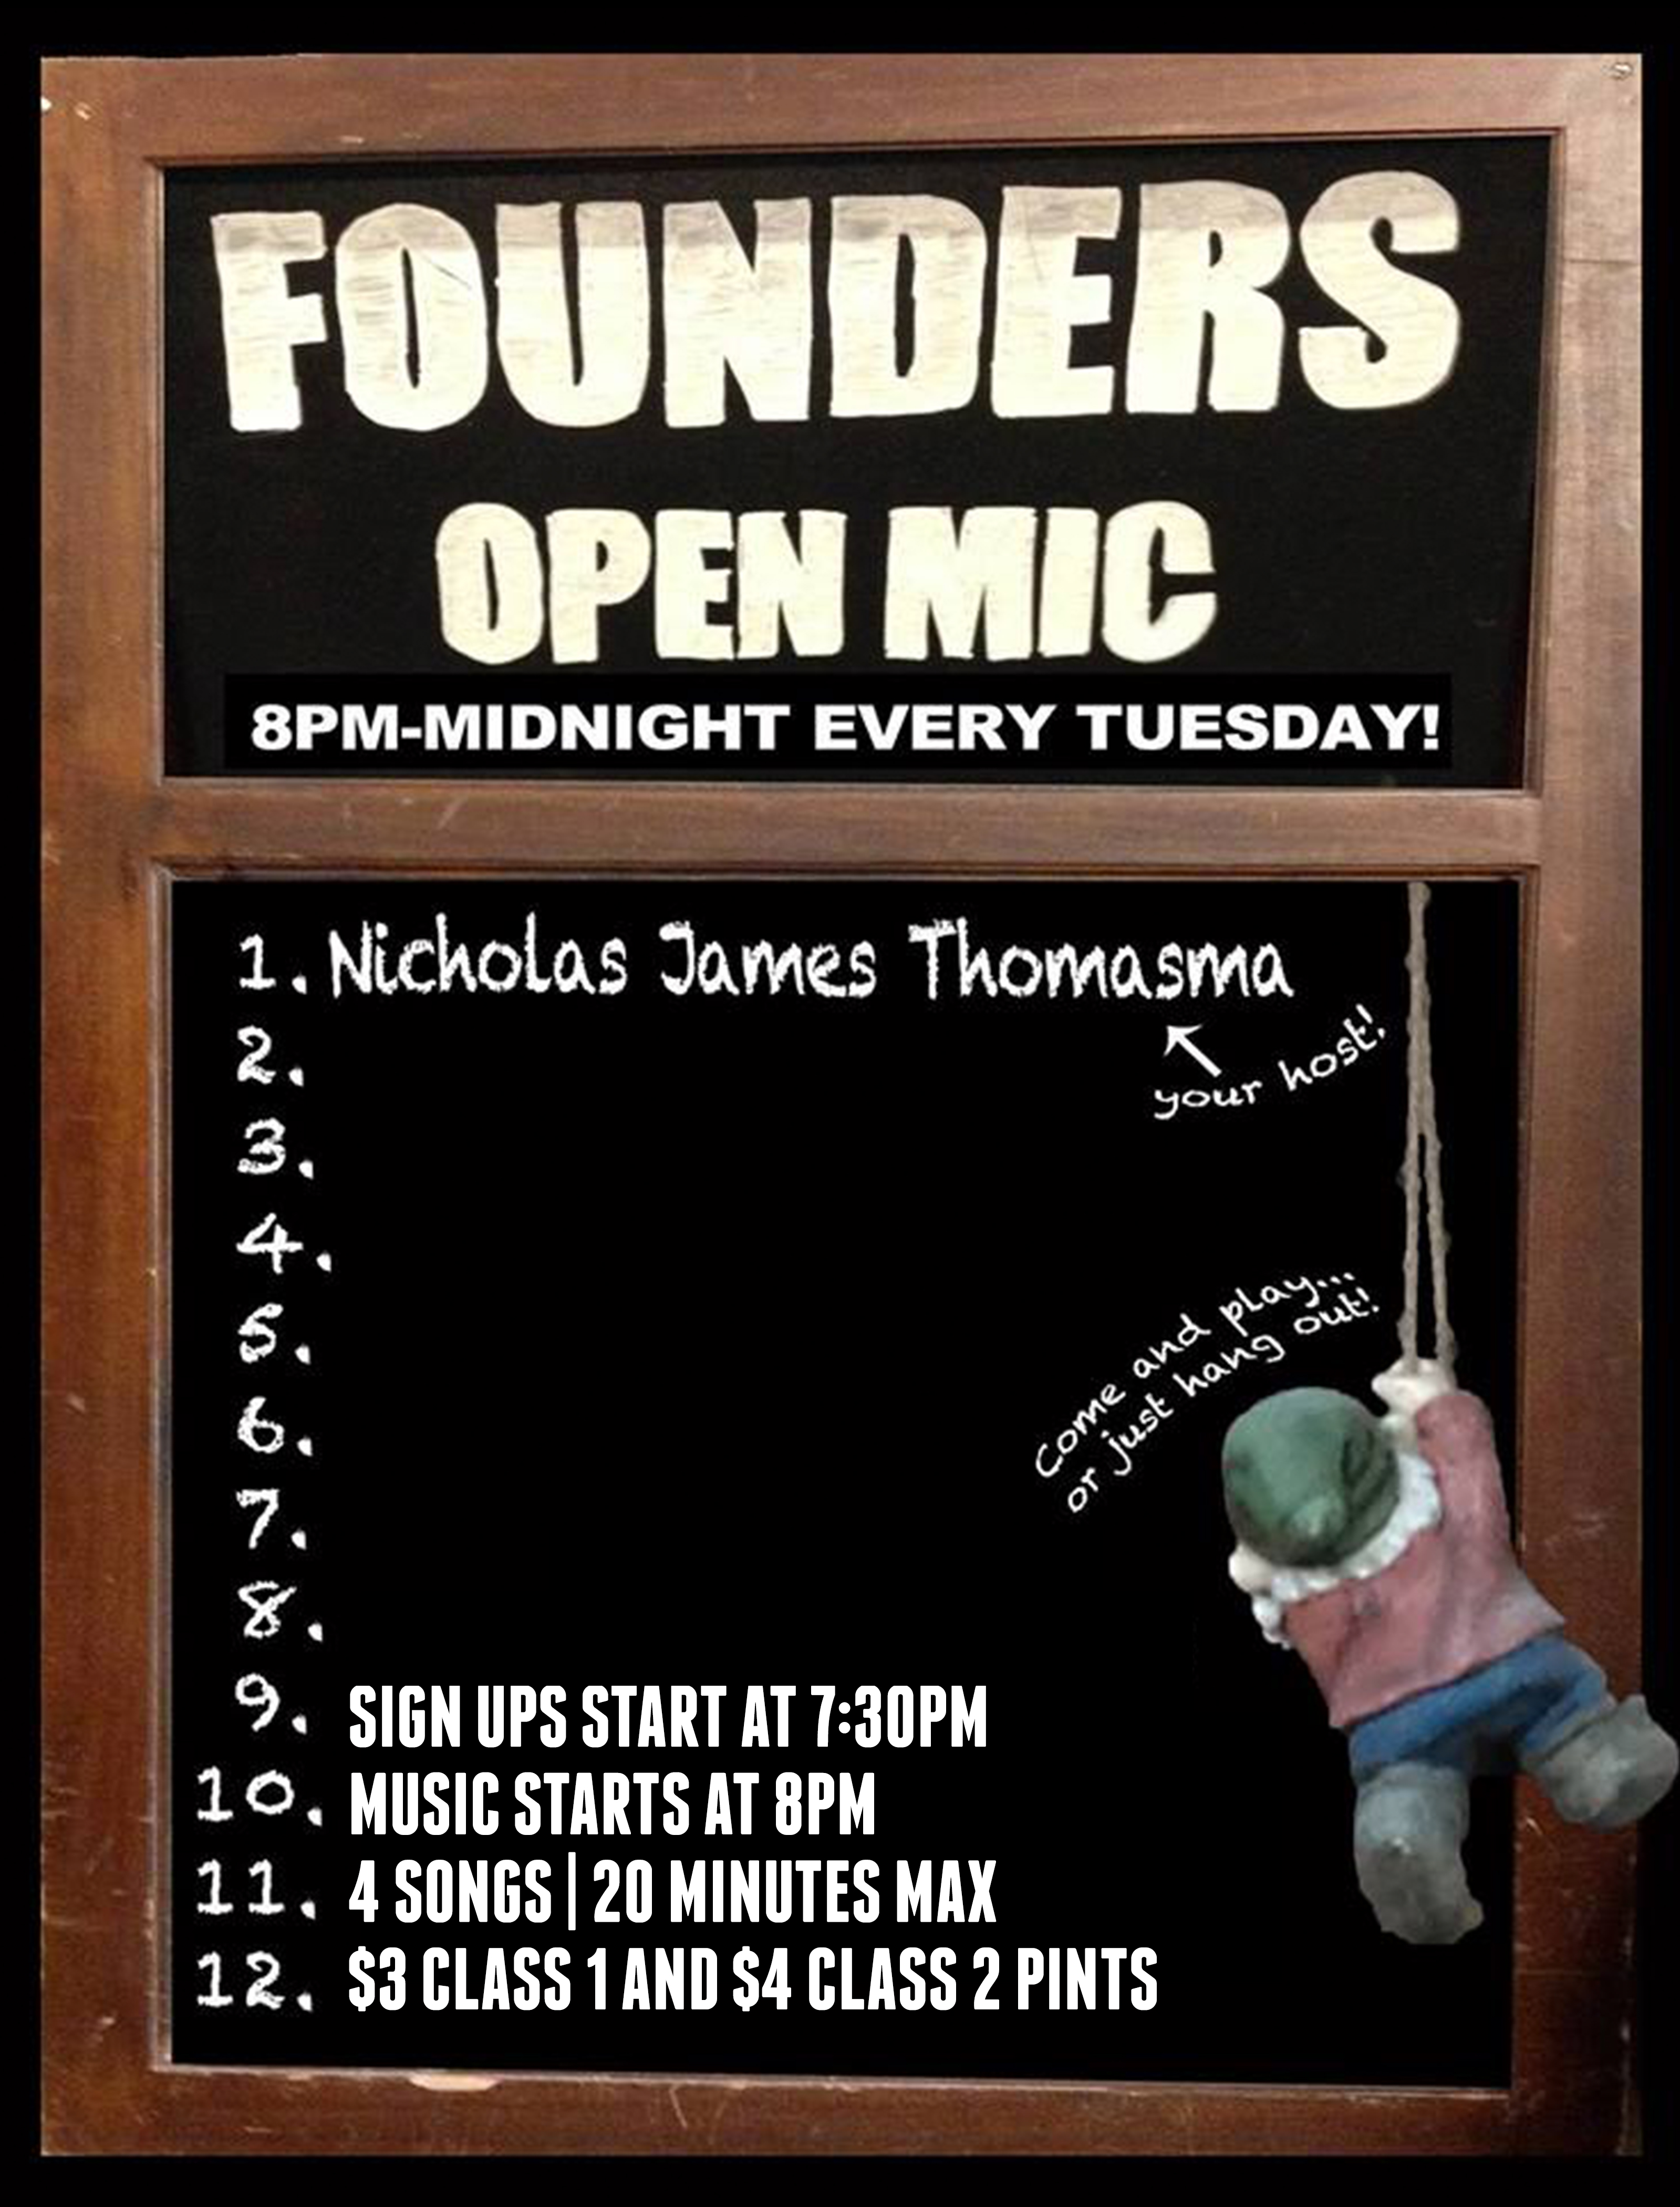 Founders Open Mic event poster